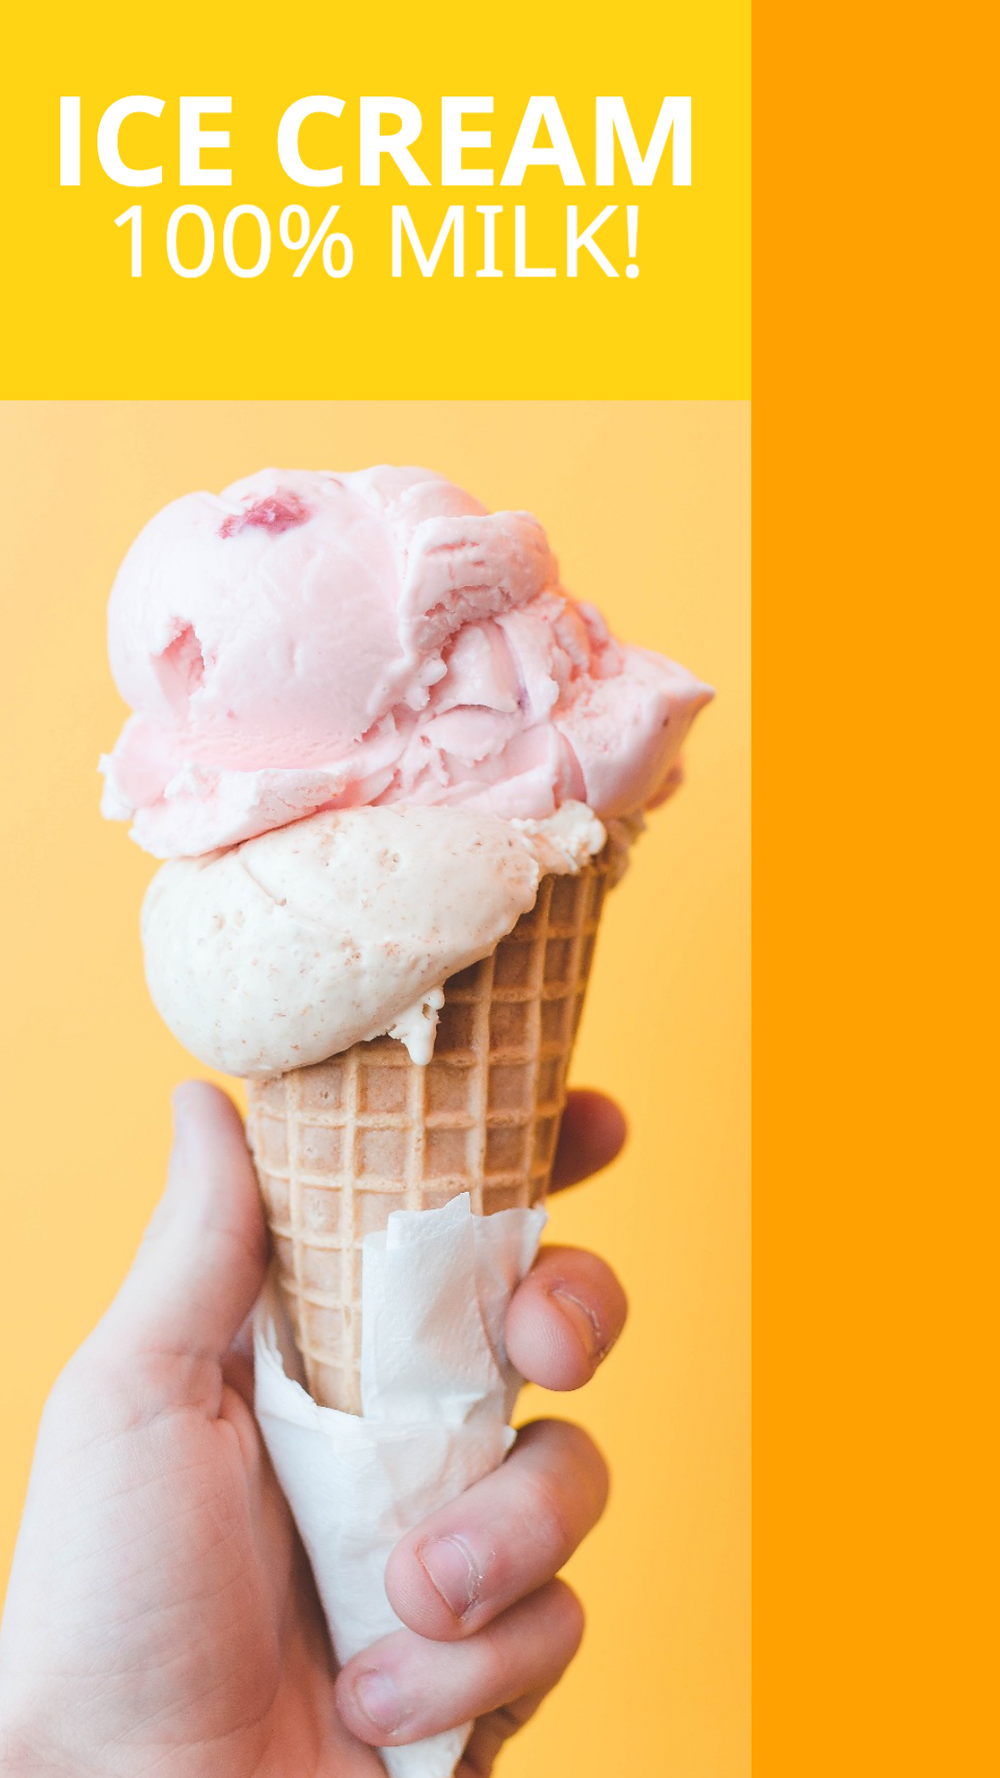 National Strawberry Icecream day Ice Cream social media story template with strawberry and vanilla ice cream in a waffle cone on a yellow and orange background